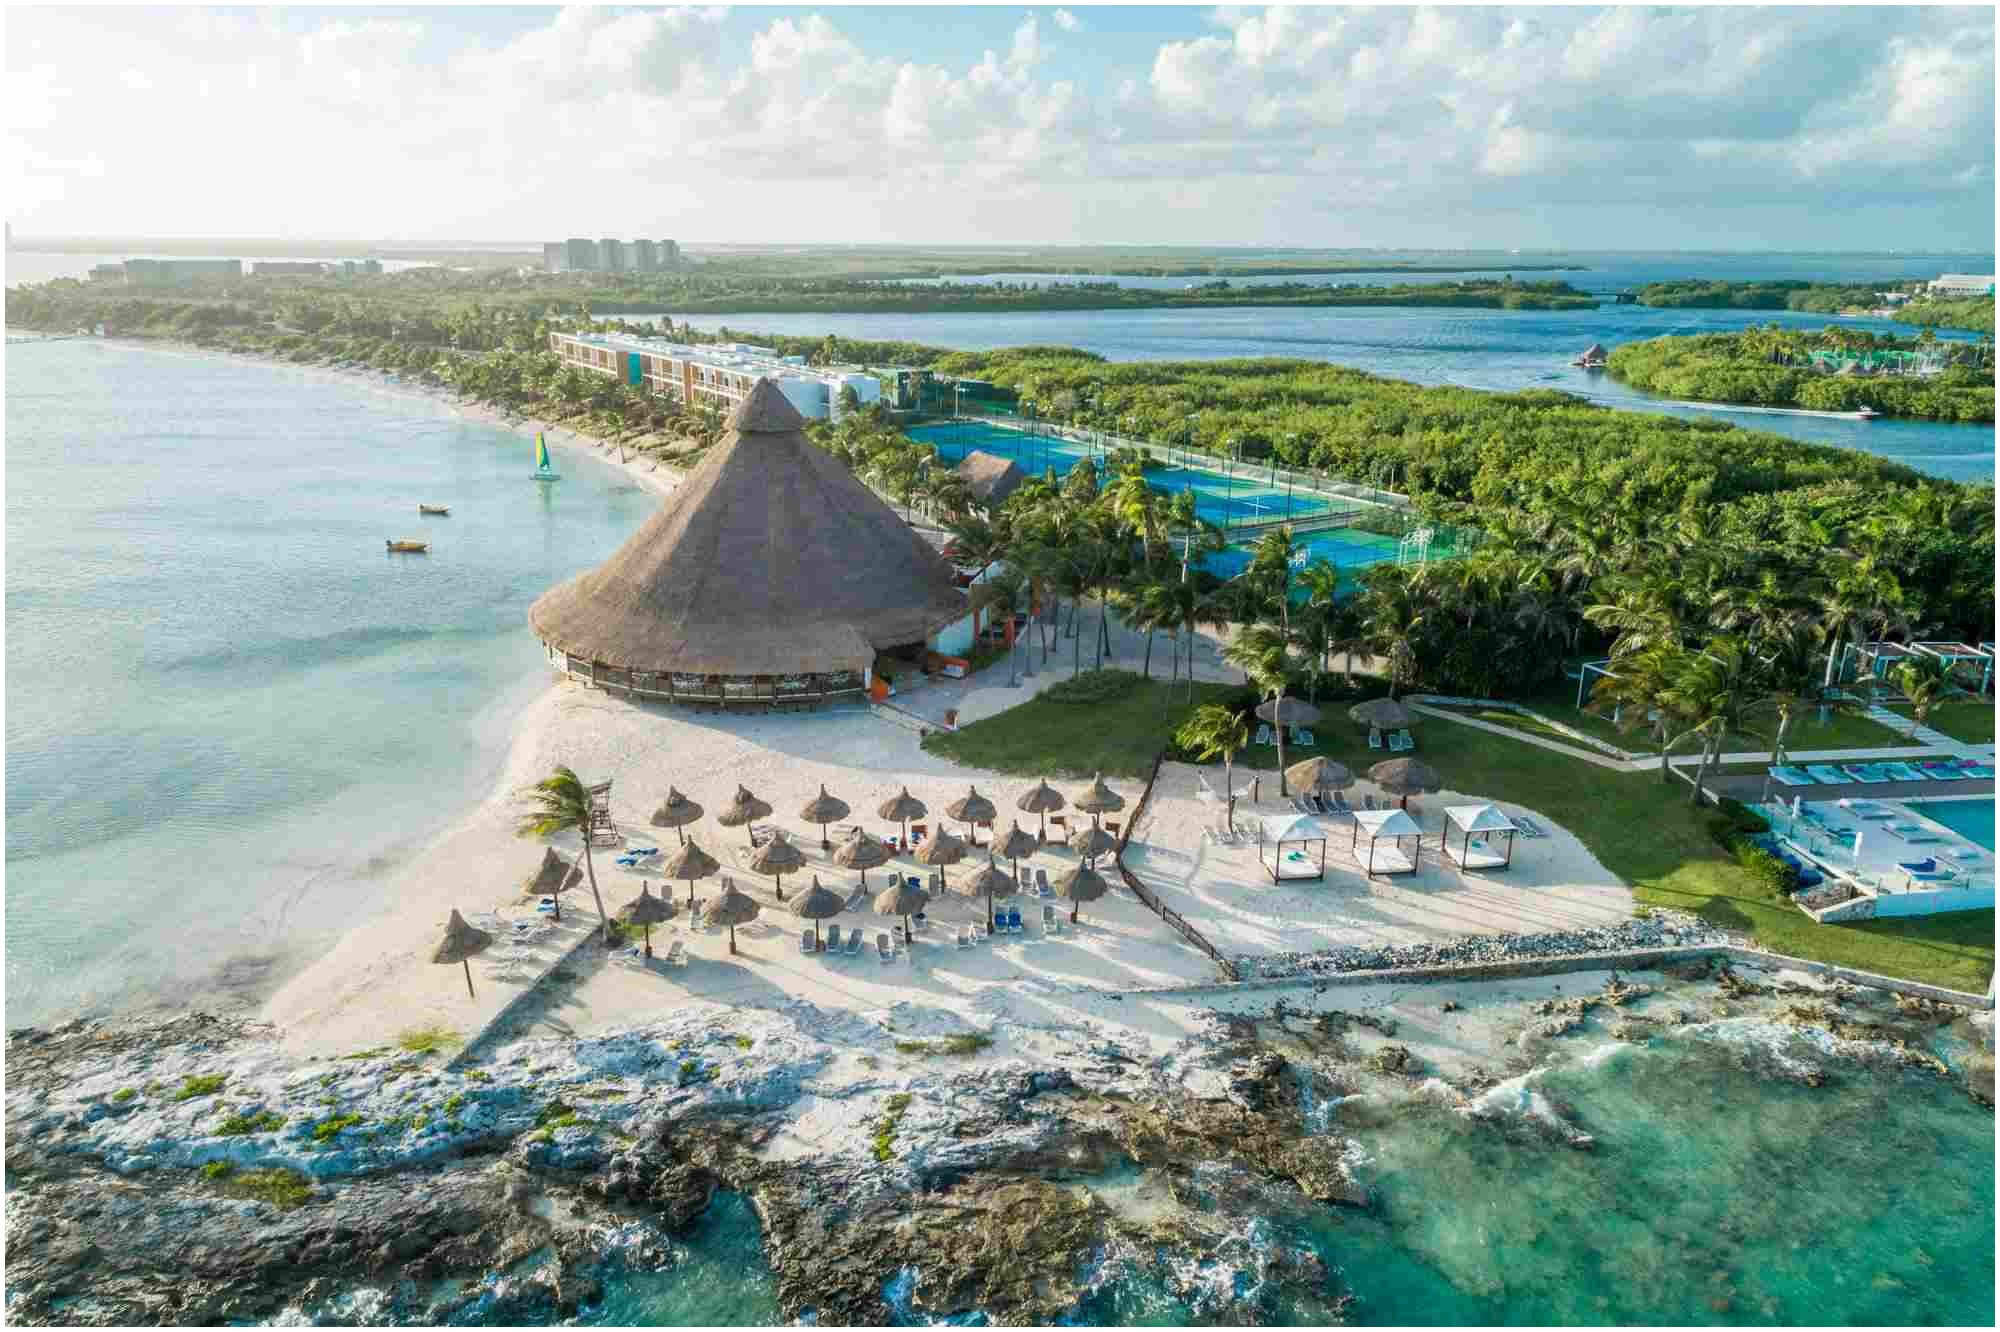 Best Italian Beach Resort for Families Fresh the 9 Best Club Med Resorts for Families In 2019